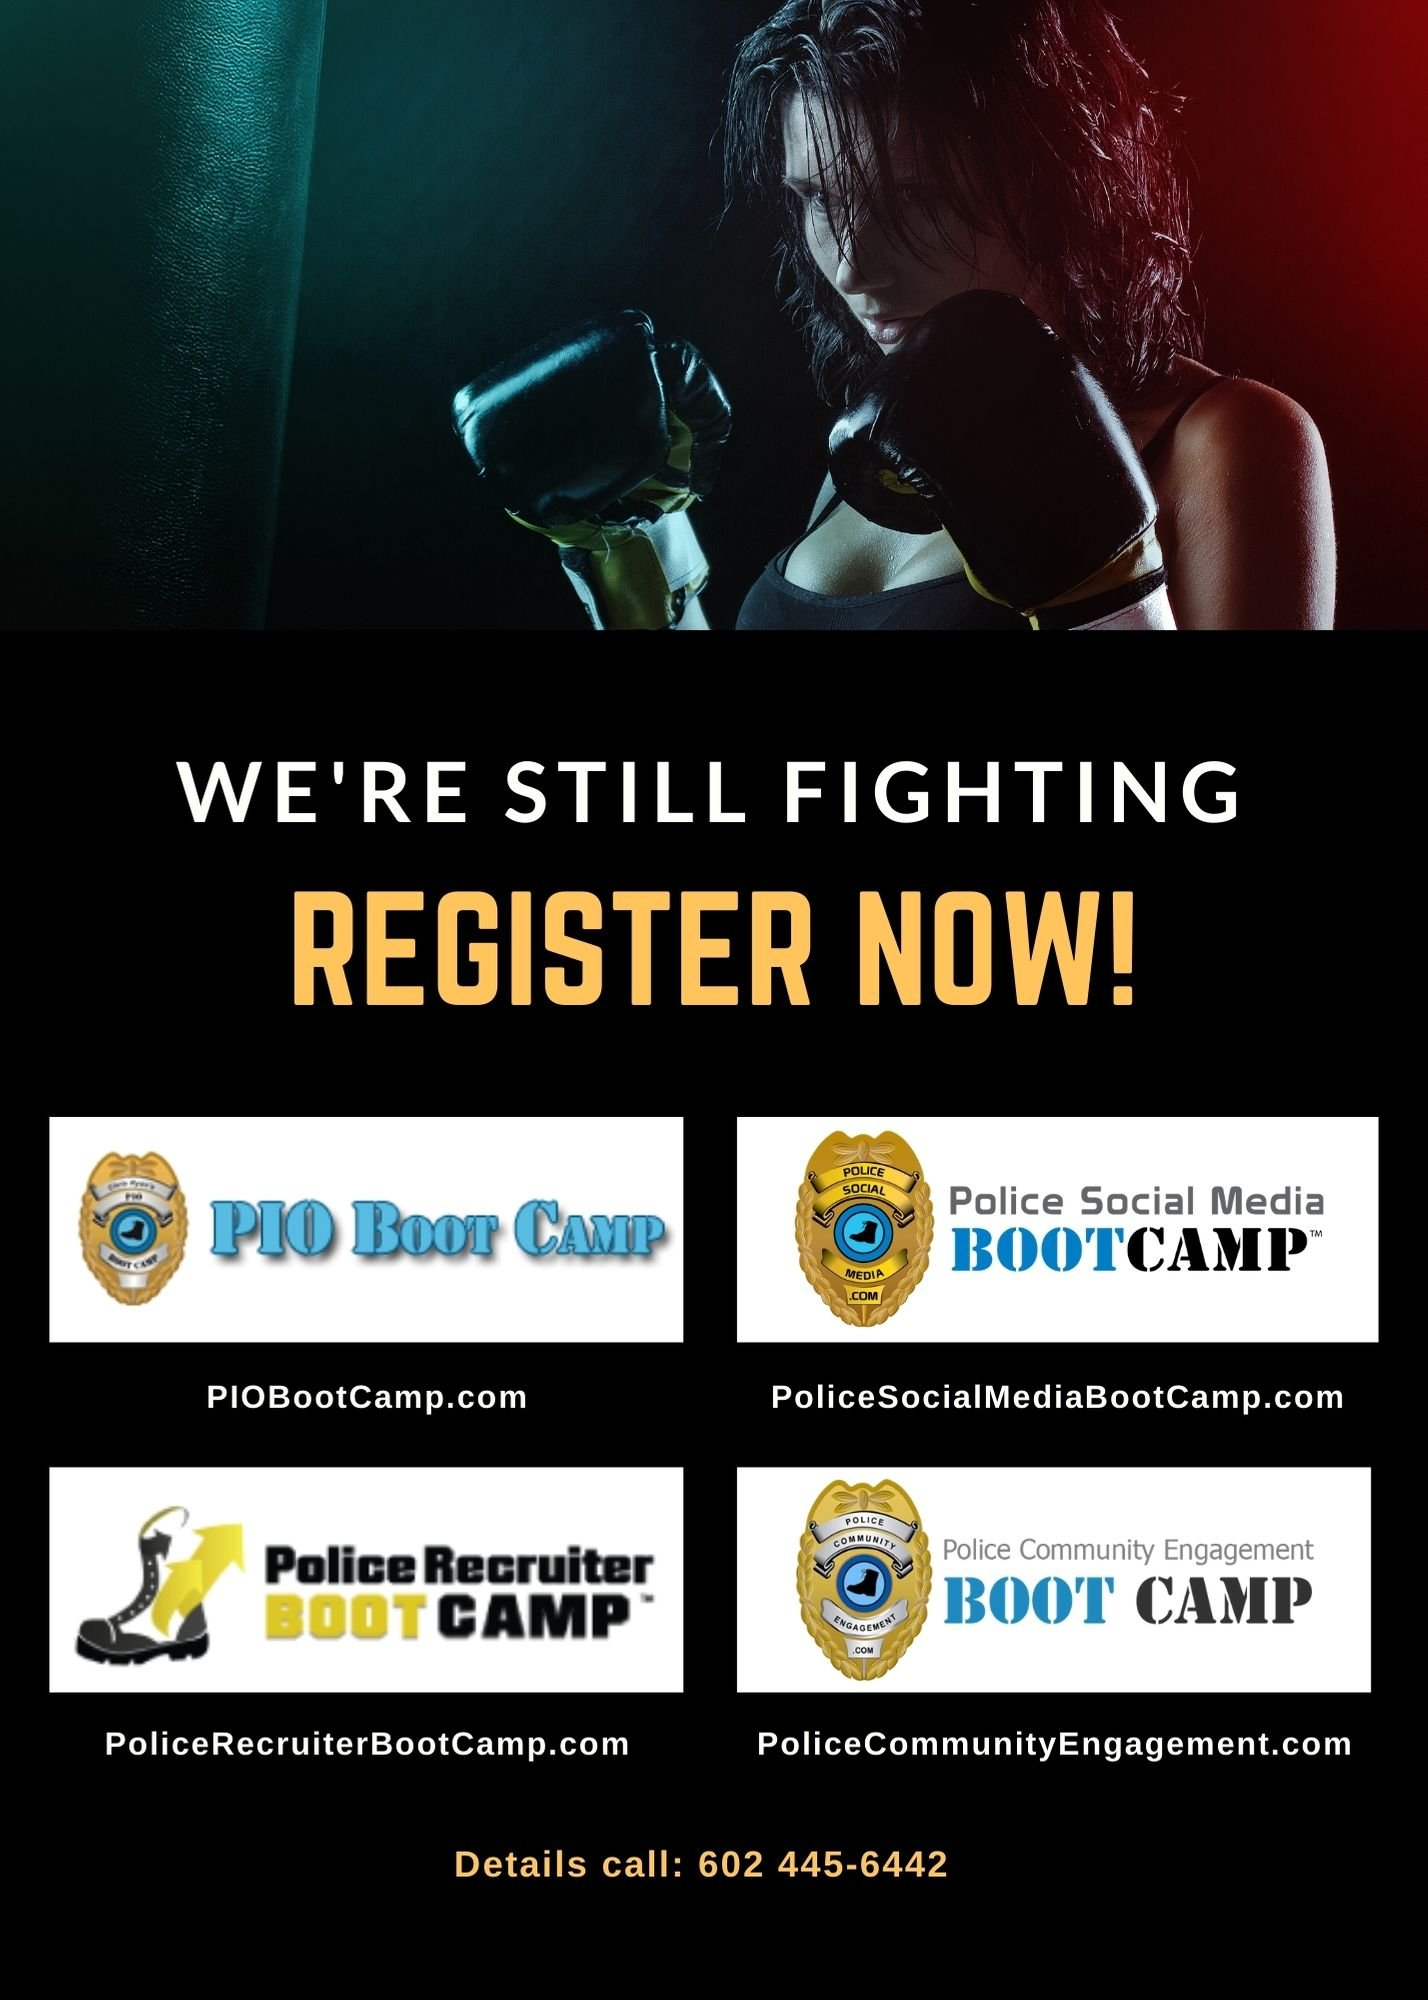 We're Still Fighting - Police Community Engagement